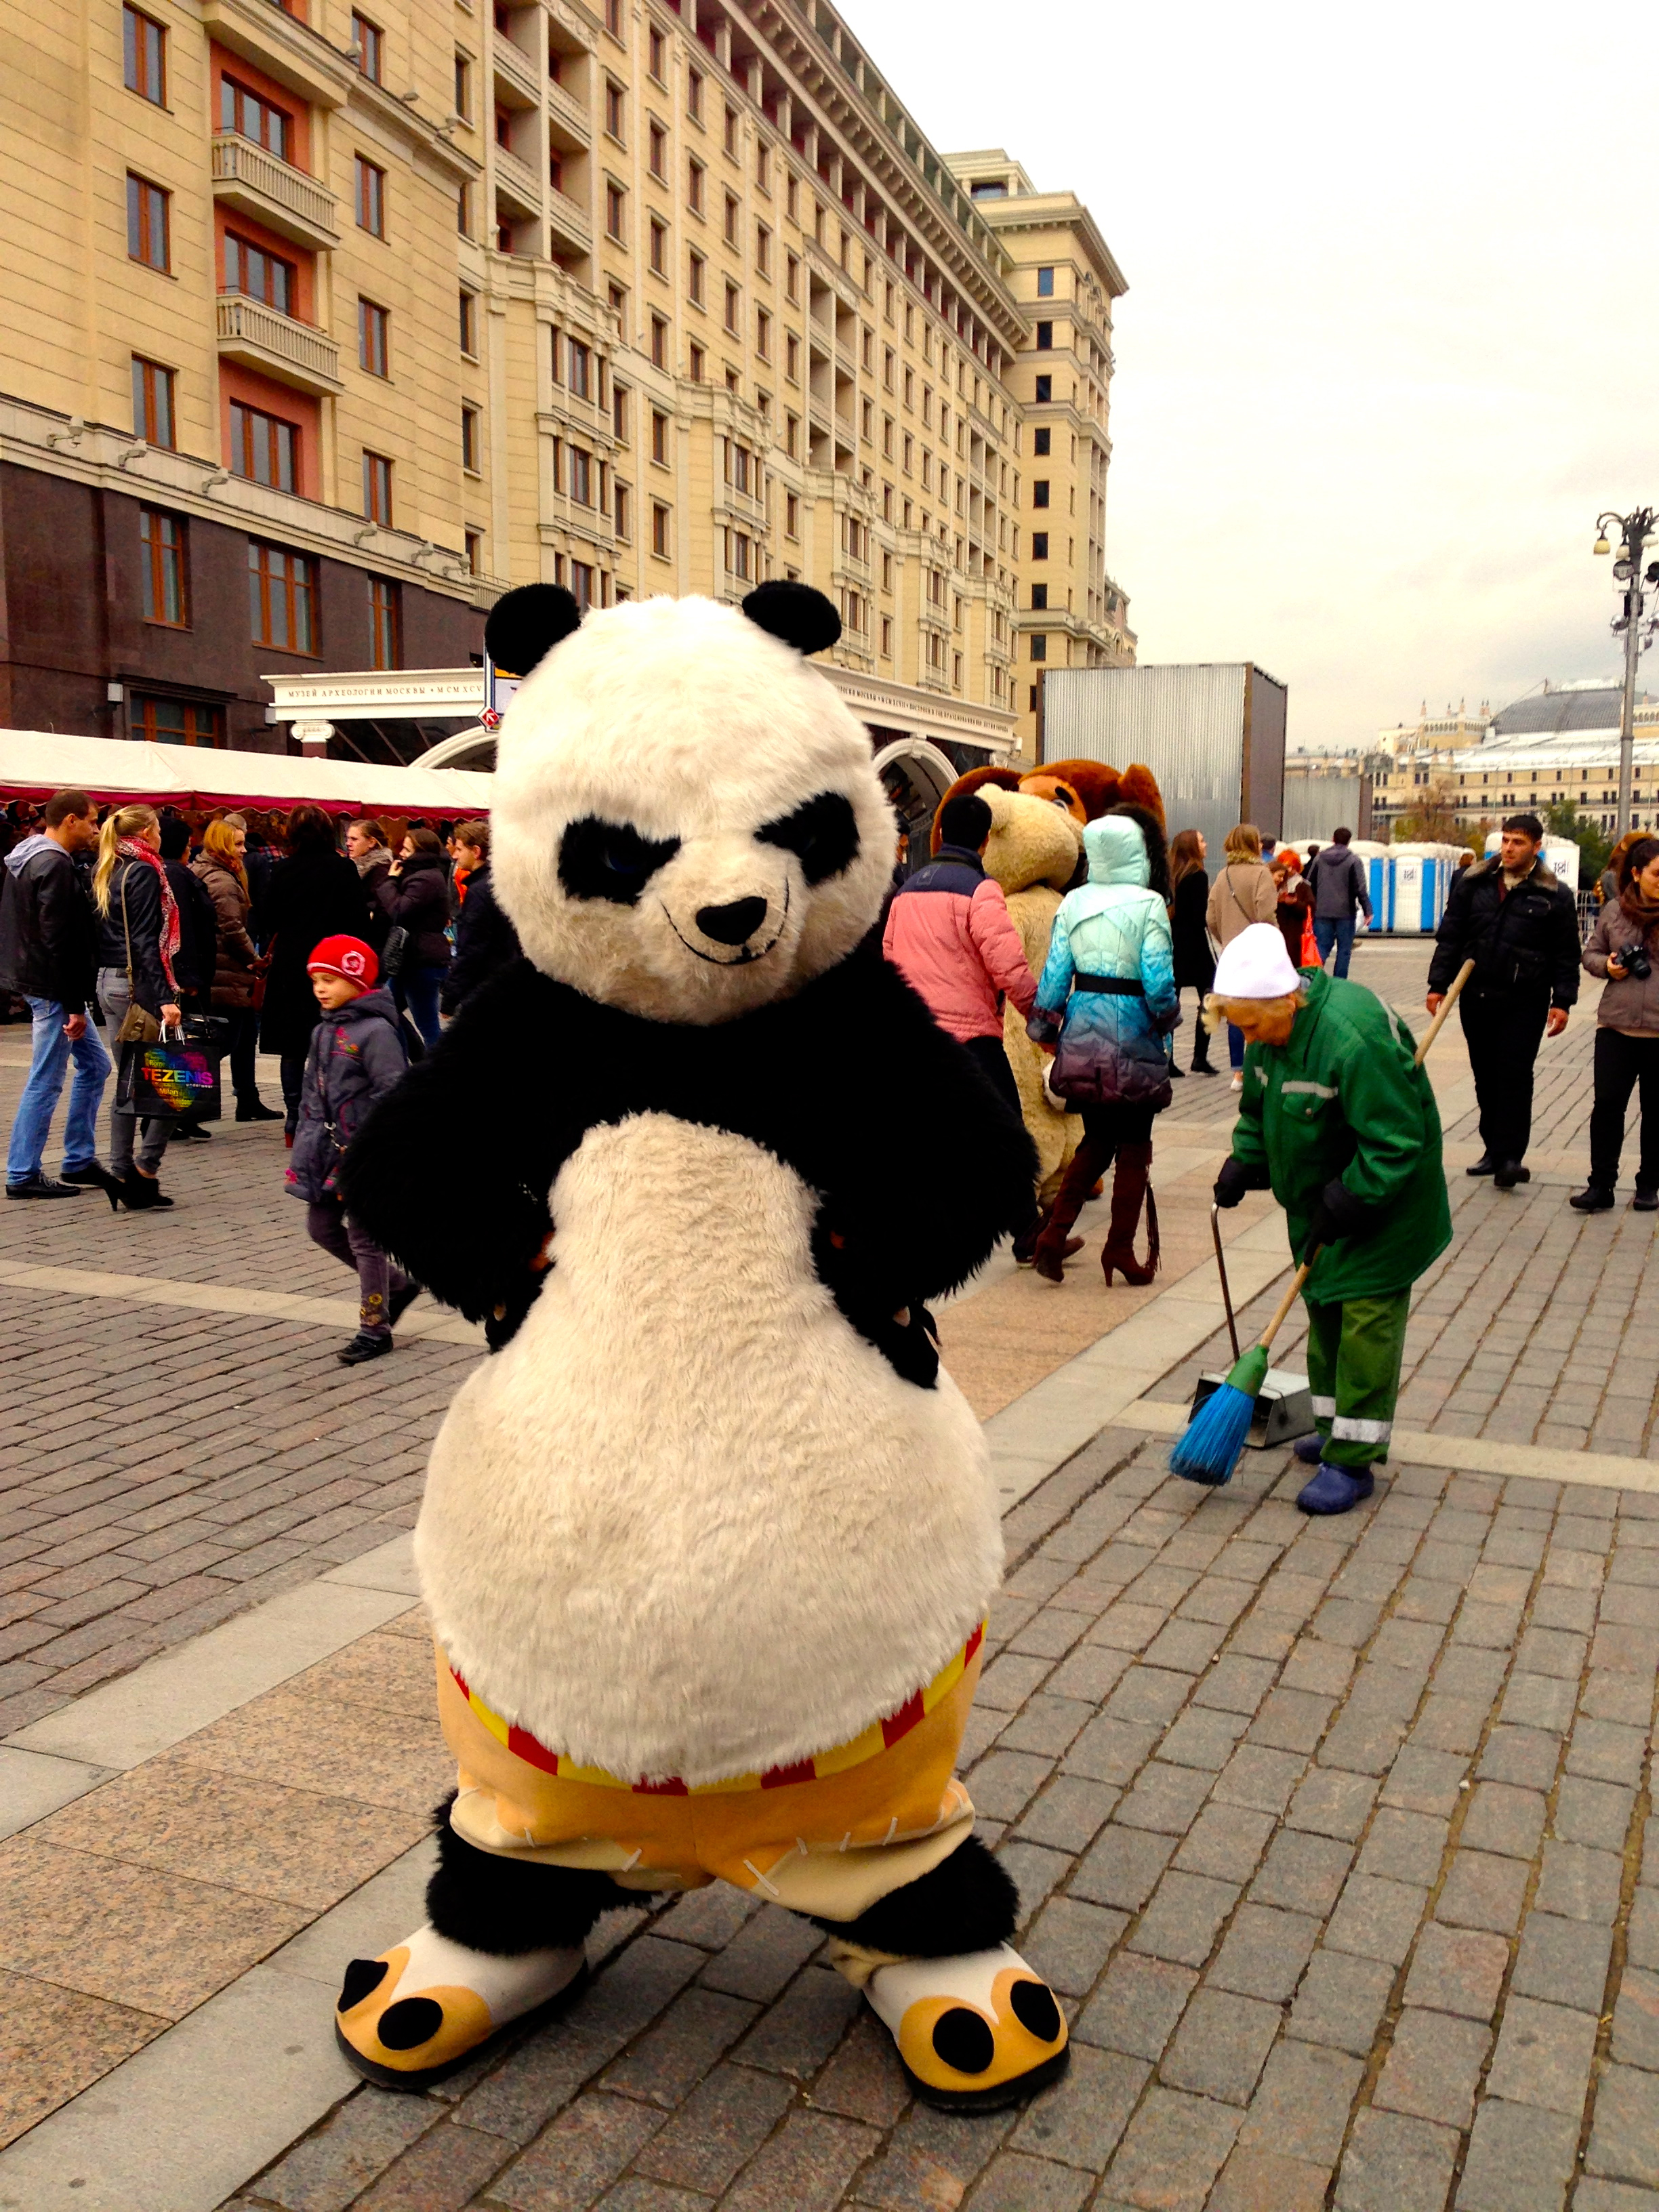 ...apparently also kung-fu panda met up with a couple of friends in moscow that weekend...